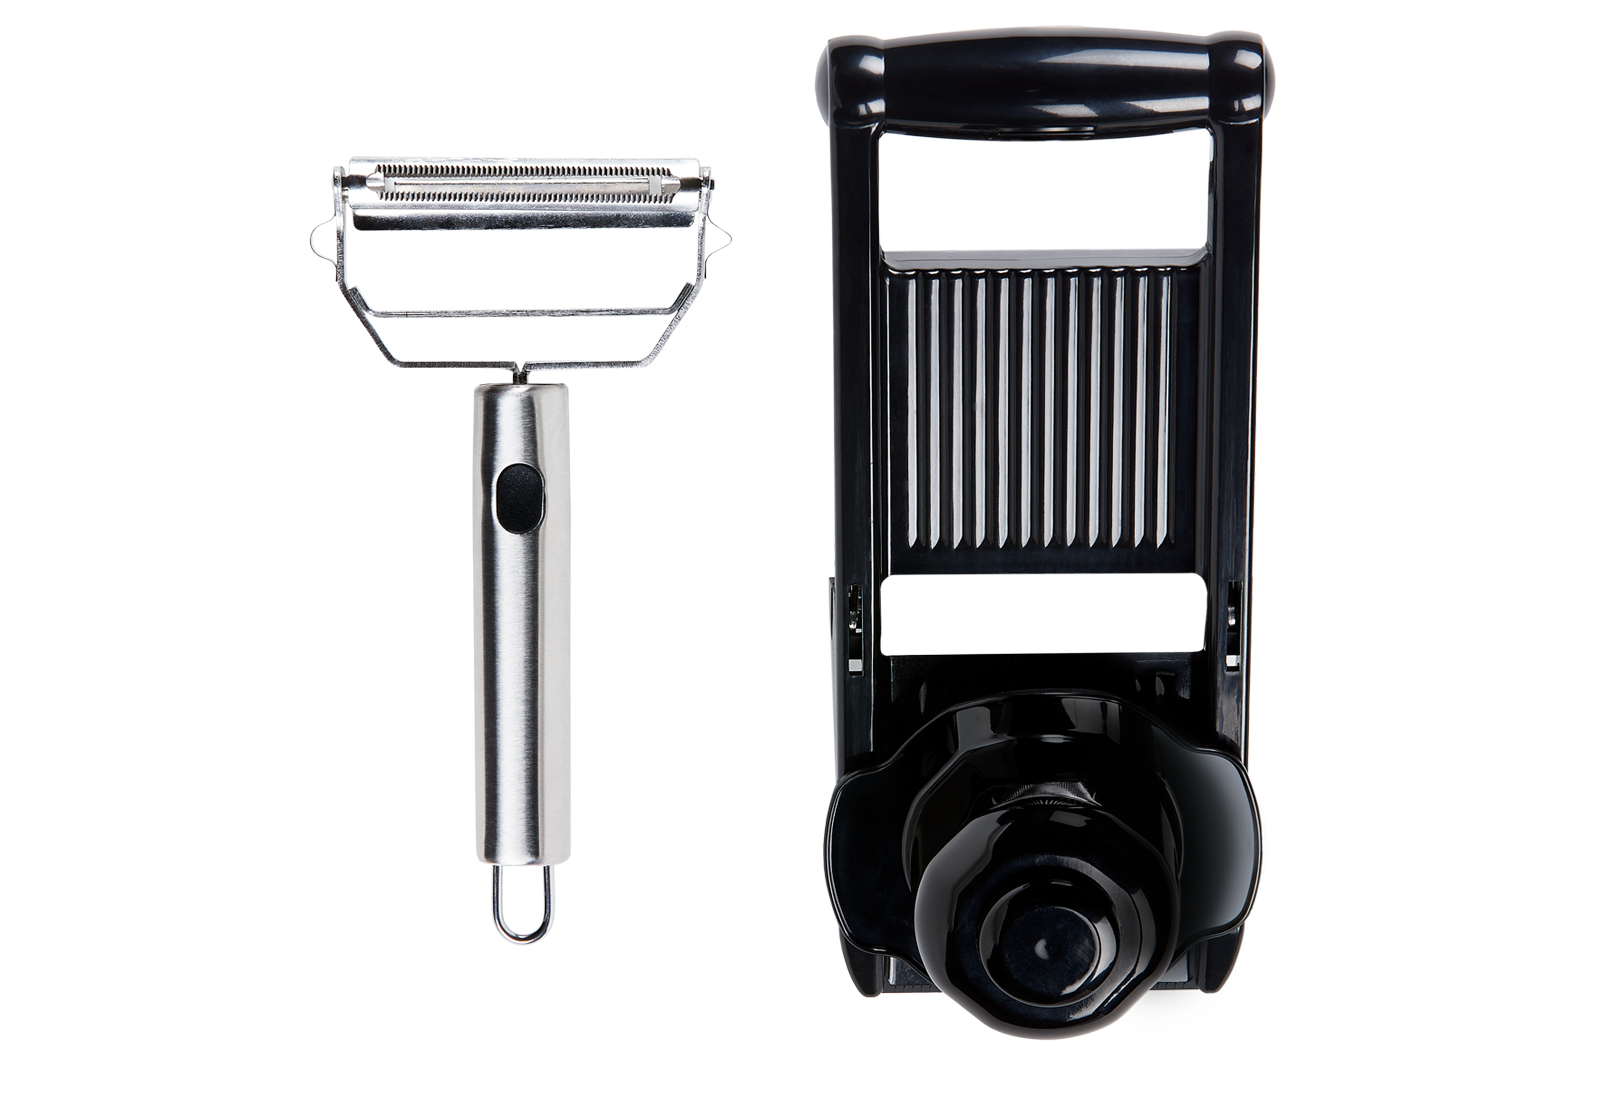 Copper Chef Titan Series Titan Peeler Pro Product Image